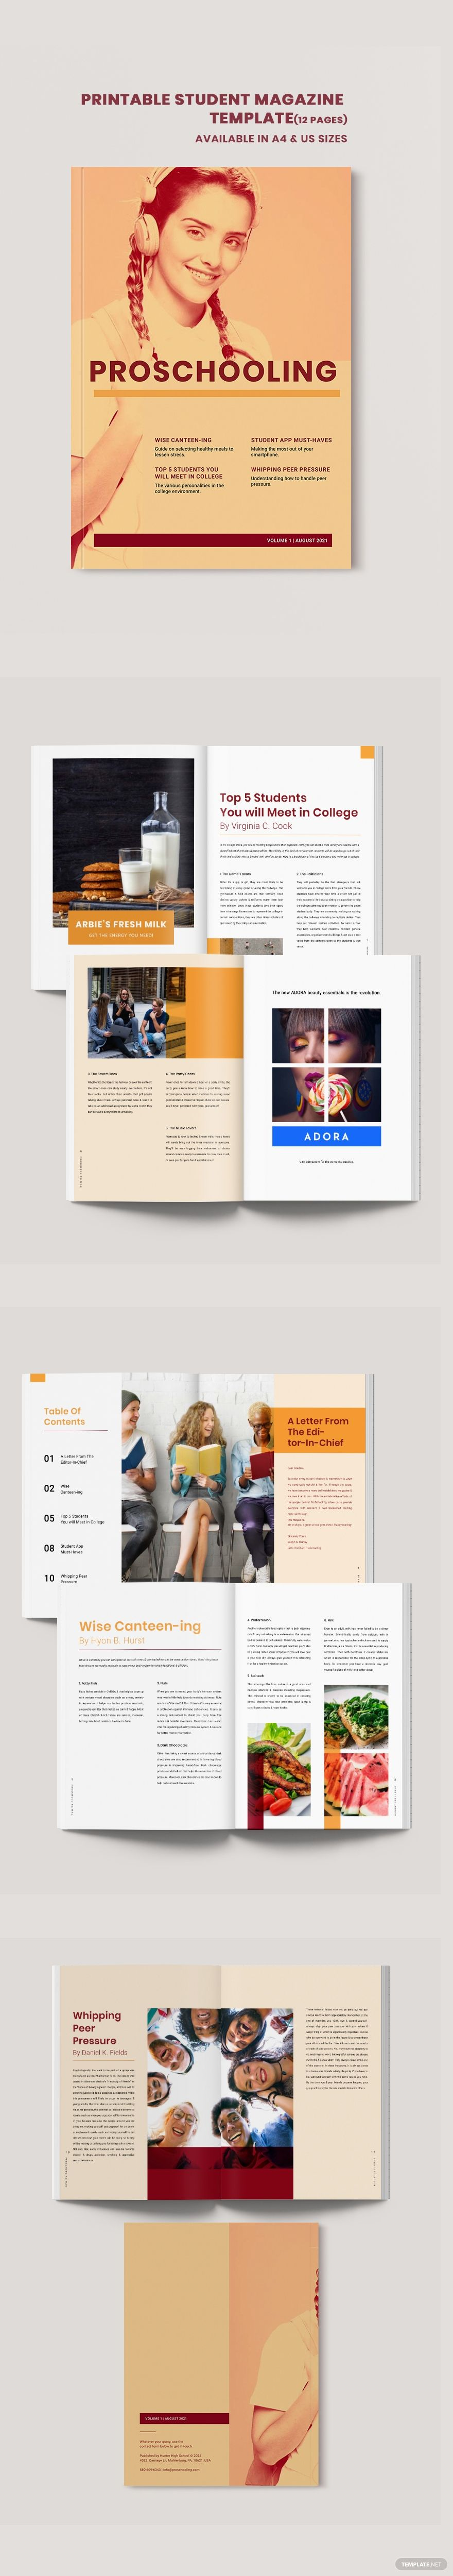 Printable Student Magazine Template Free Publisher Indesign Word Apple Pages Template Net Student Magazines Magazine Template Student Magazine template for microsoft word